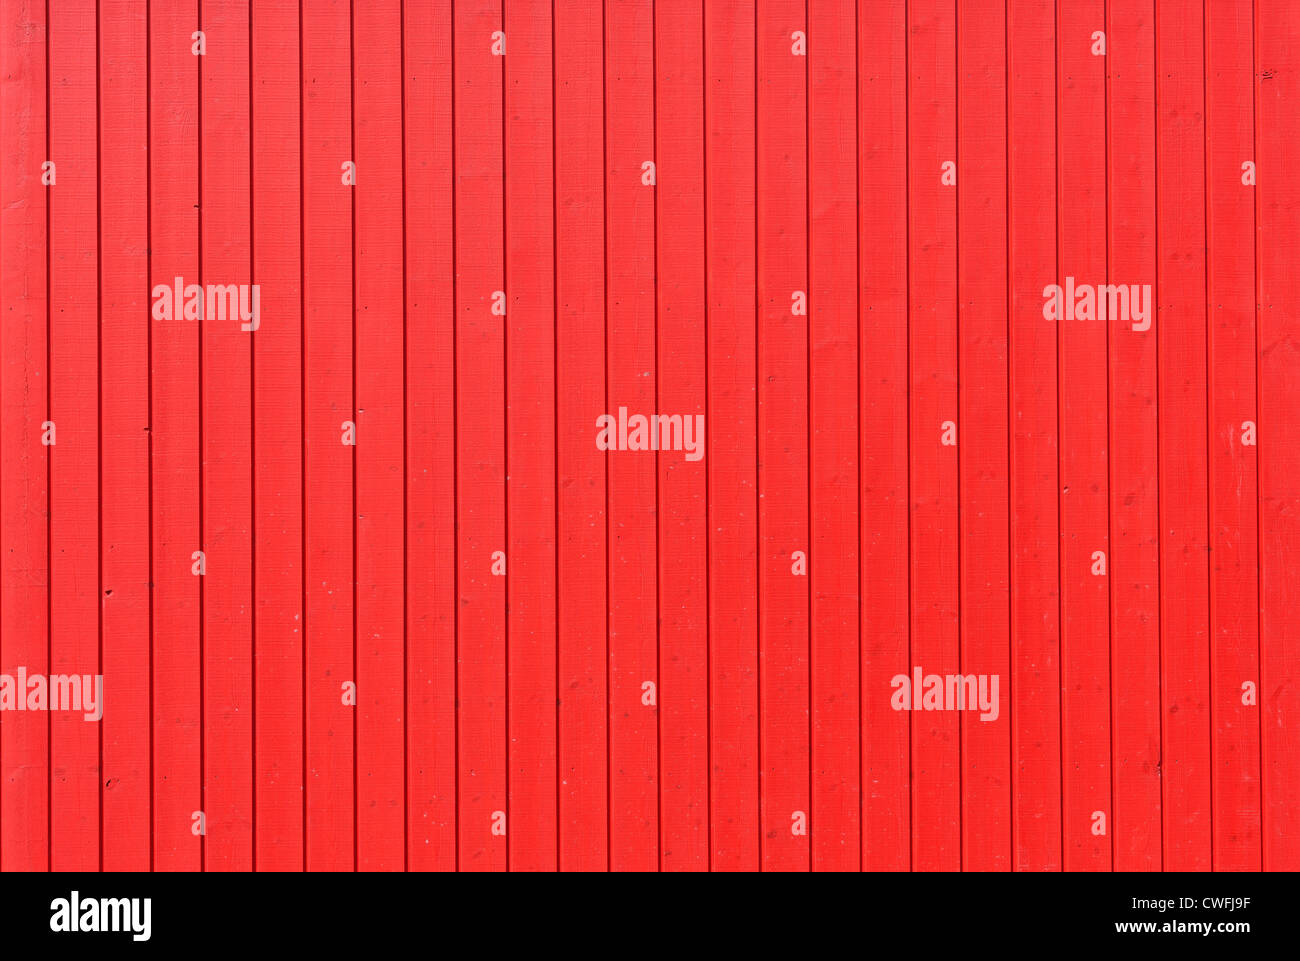 Background image of a wooden wall painted in bright red color - Stock Image